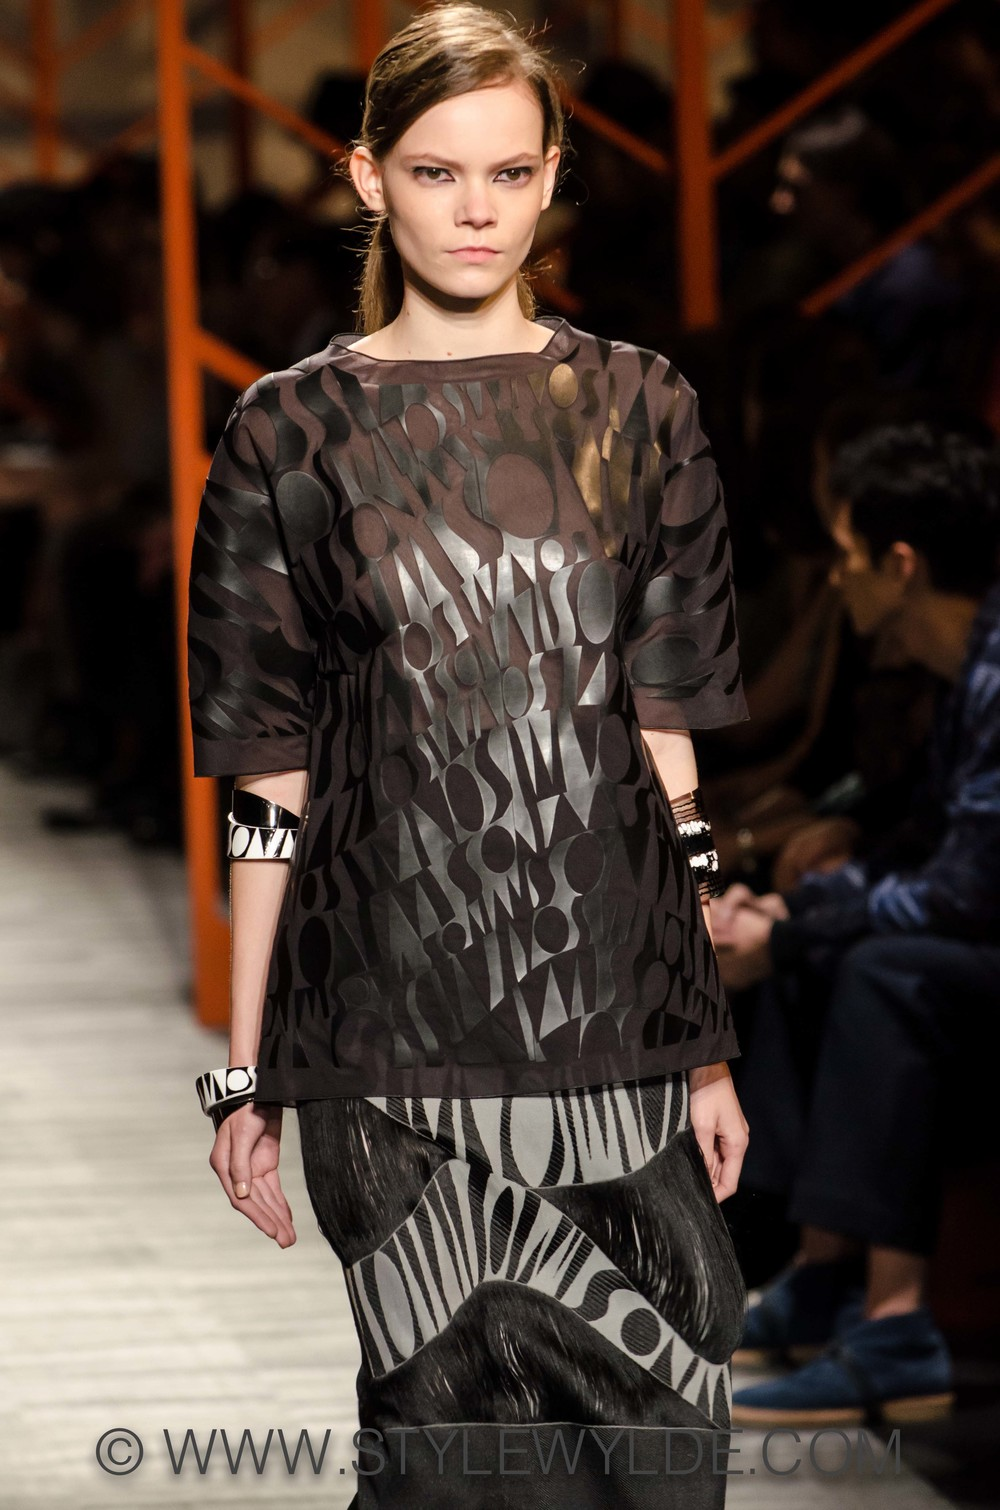 STYLEWYLDE_Missoni_SS2014 (1 of 1)-11.jpg